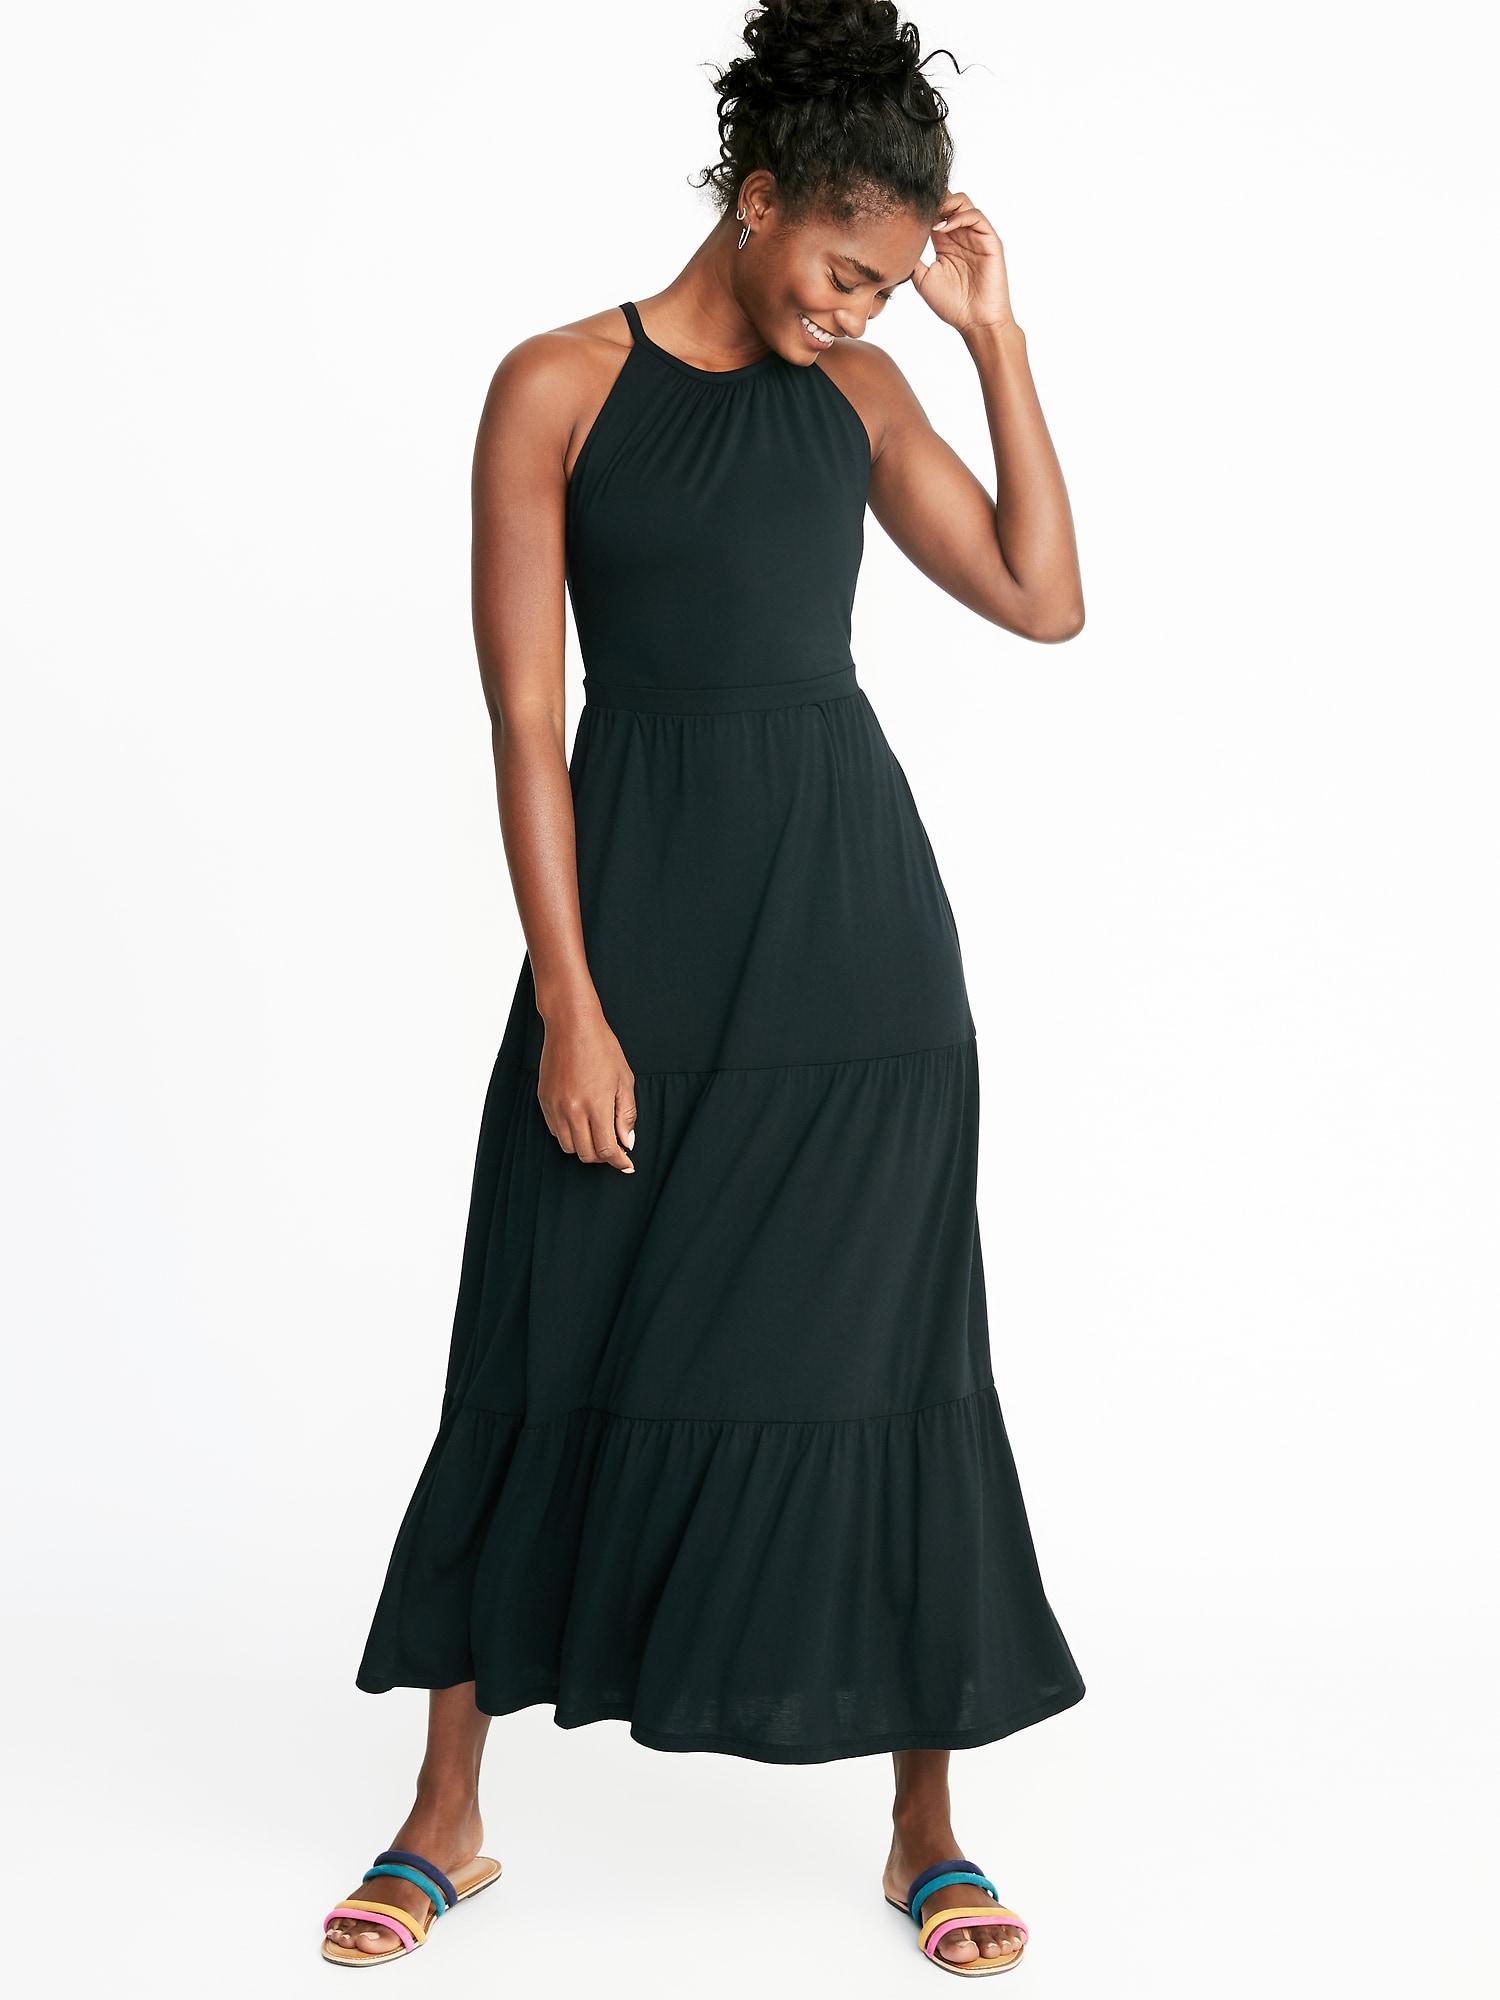 Dept Maxi Jurk.High Neck Waist Defined Maxi Dress For Women Old Navy